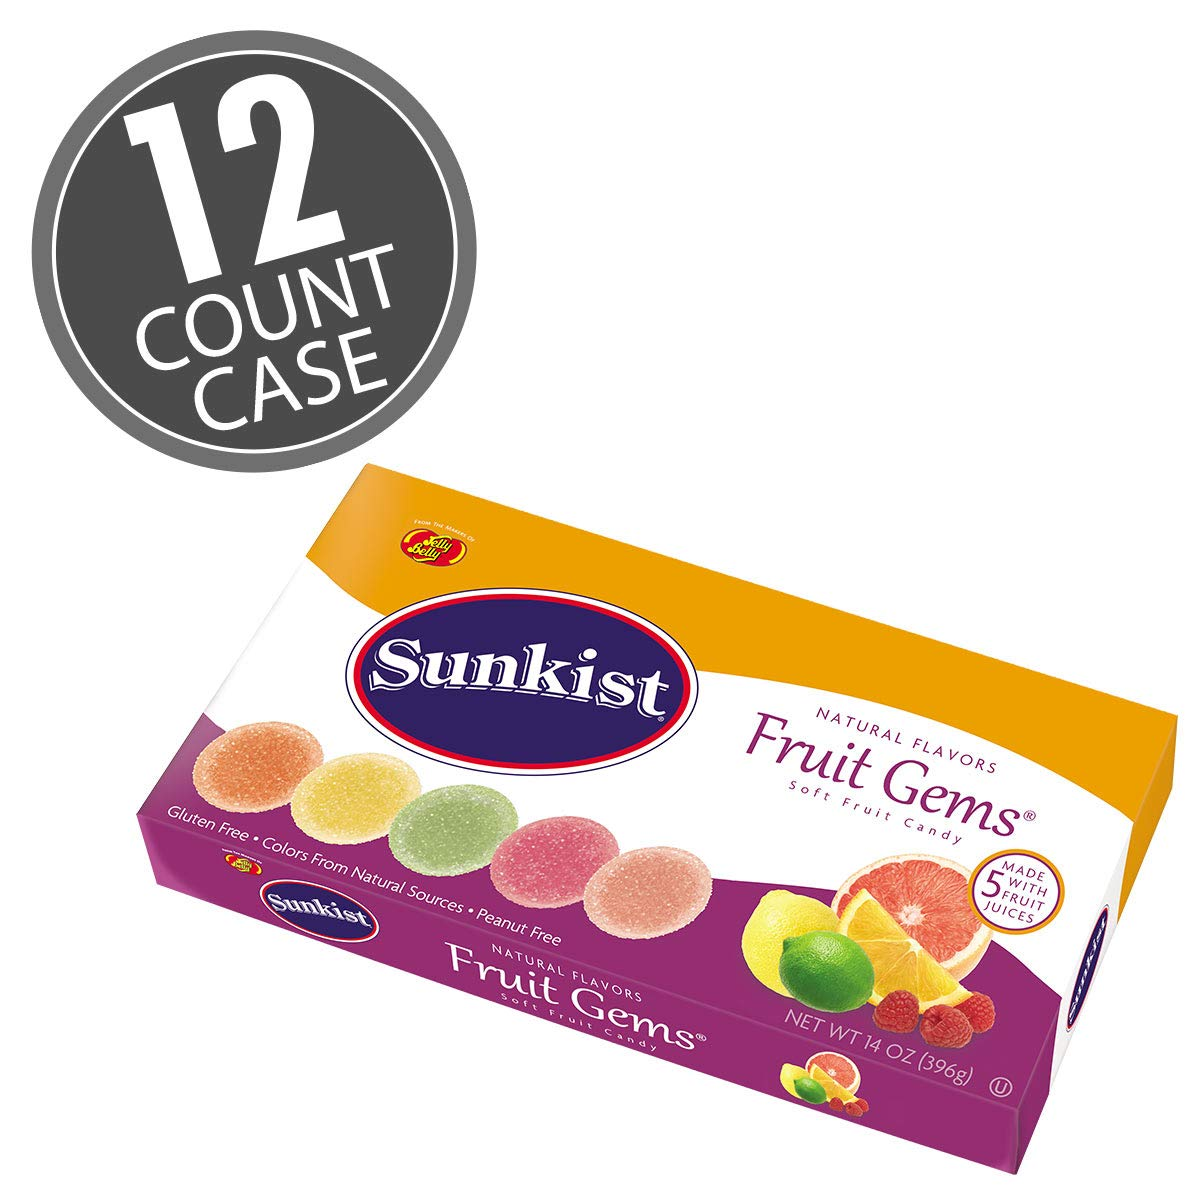 Jelly Belly Sunkist® Fruit Gems 14 oz Box -12 Count Case - Official, Genuine, Straight from the Source